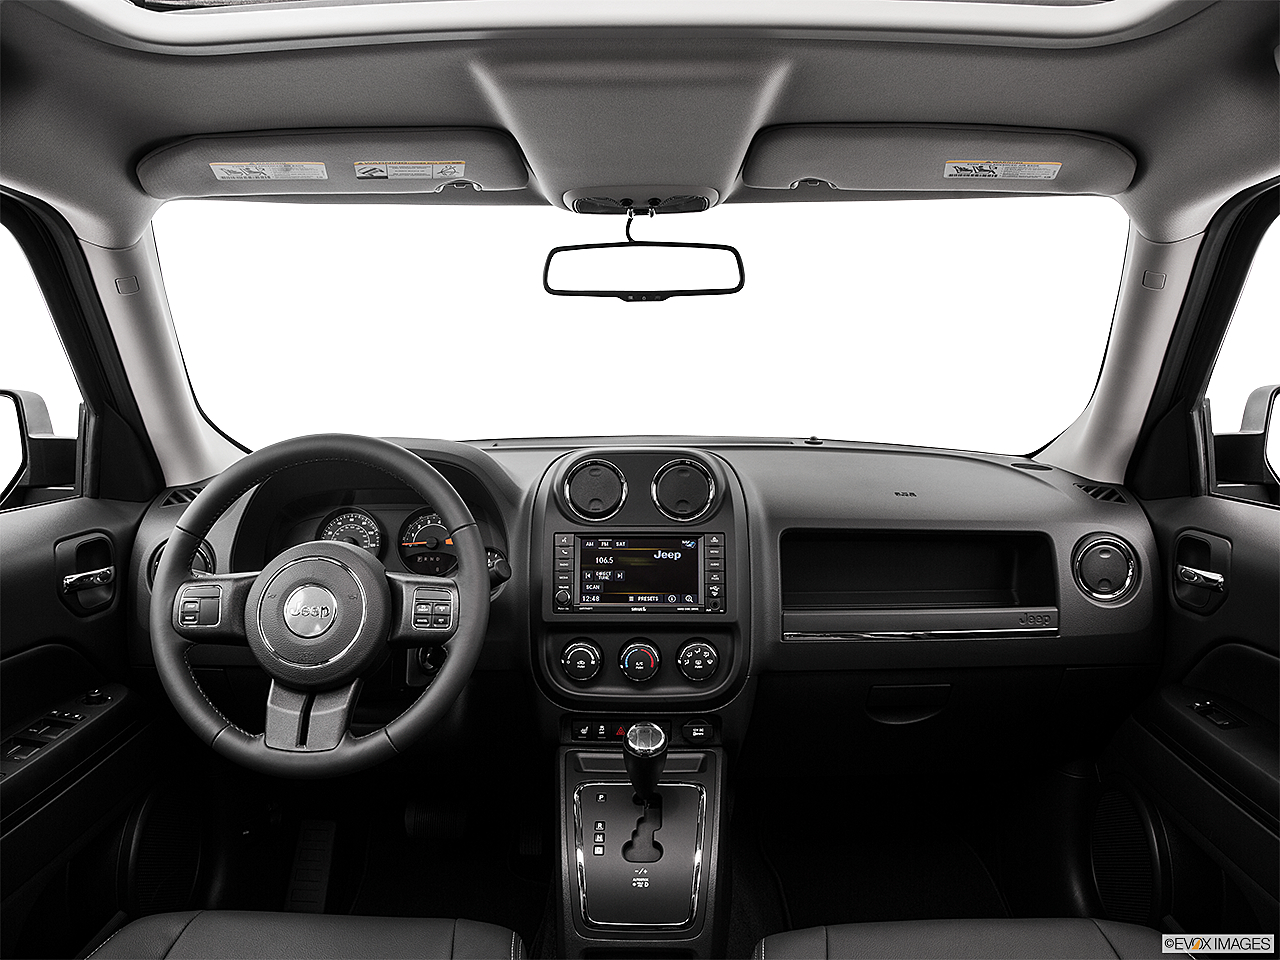 Charming 2016 Jeep Patriot High Altitude, Centered Wide Dash Shot